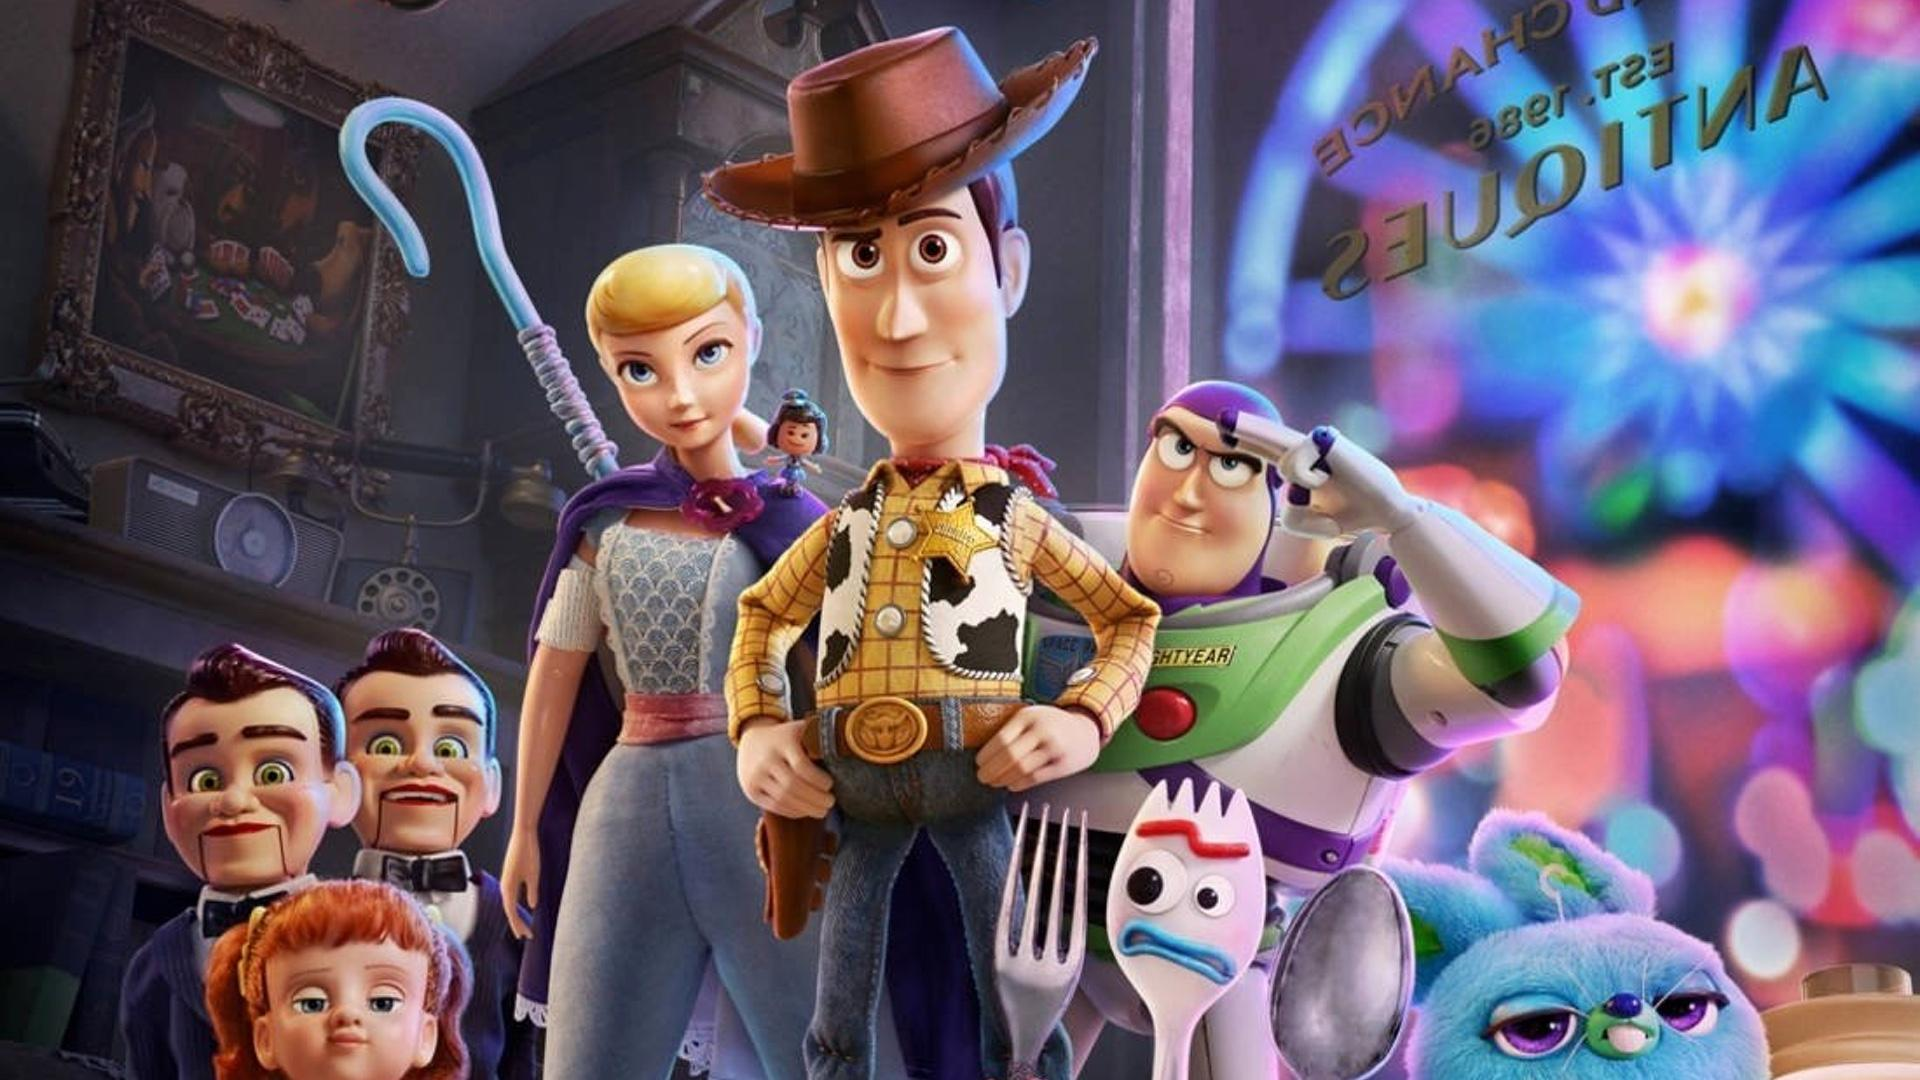 Wonderful Full Trailer and Poster for Pixar's TOY STORY 4 — GeekTyrant